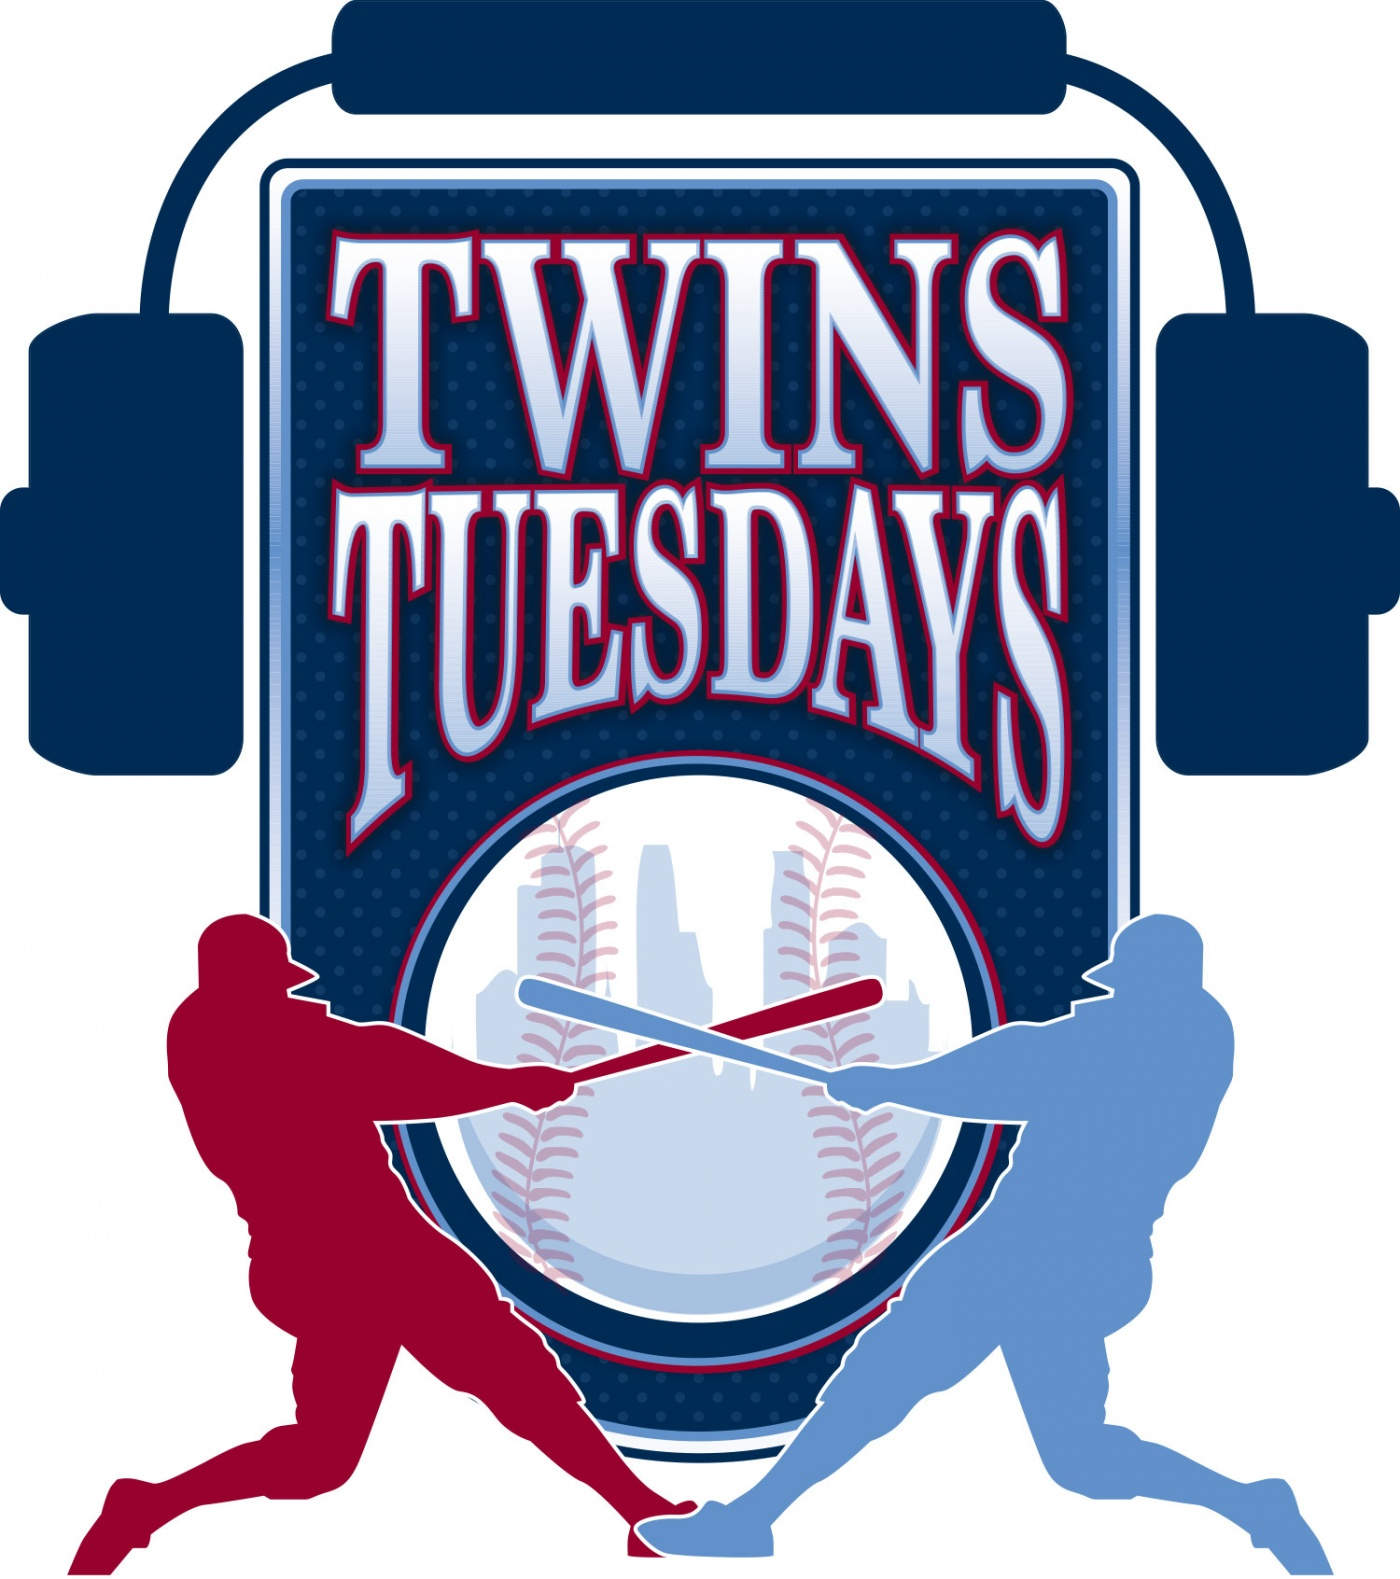 Twins Tuesdays